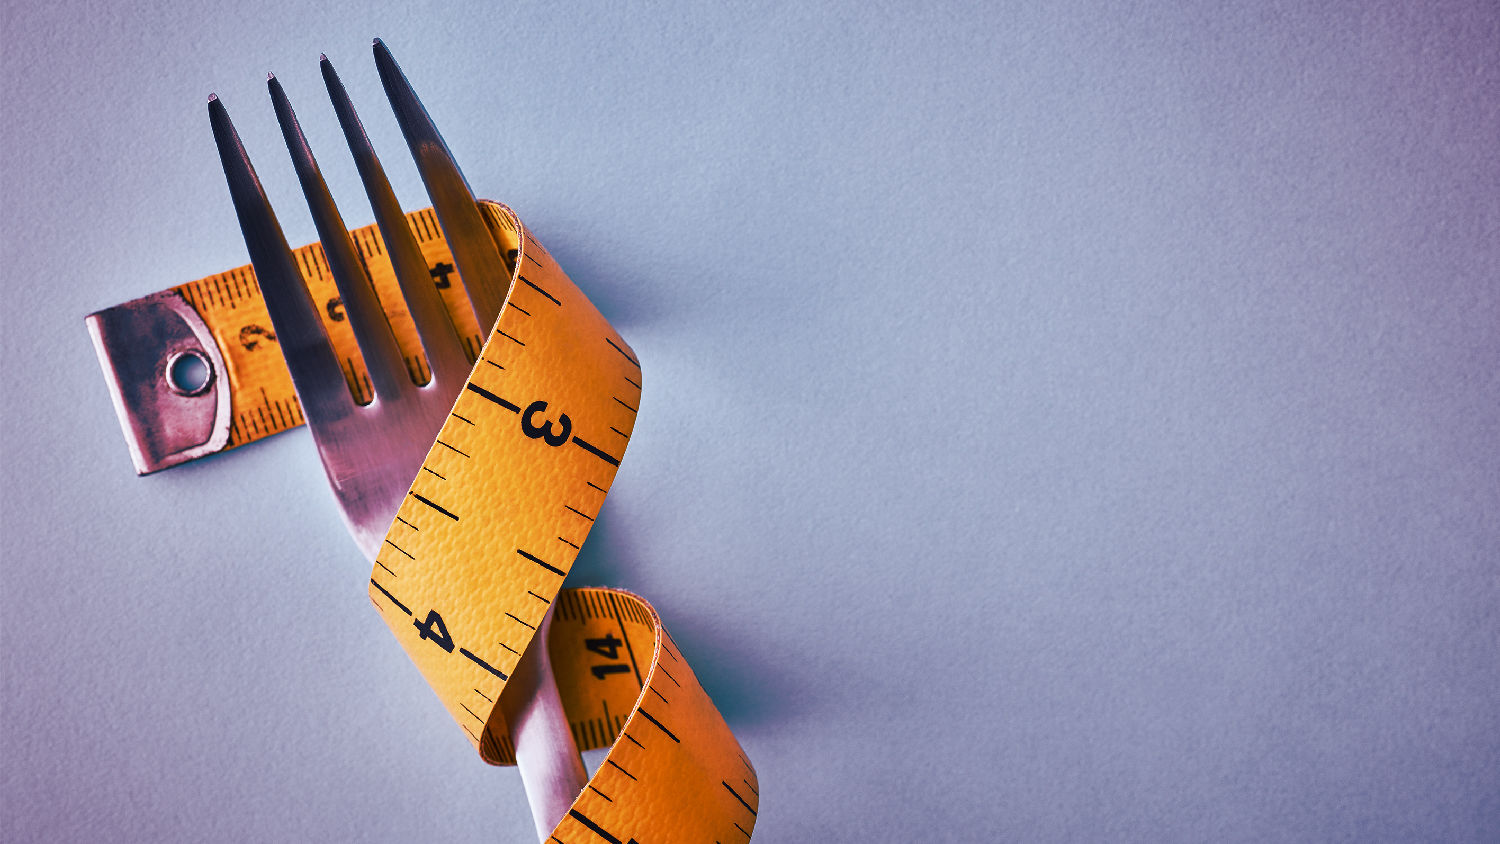 Dieting Mistakes: Short term satisfaction